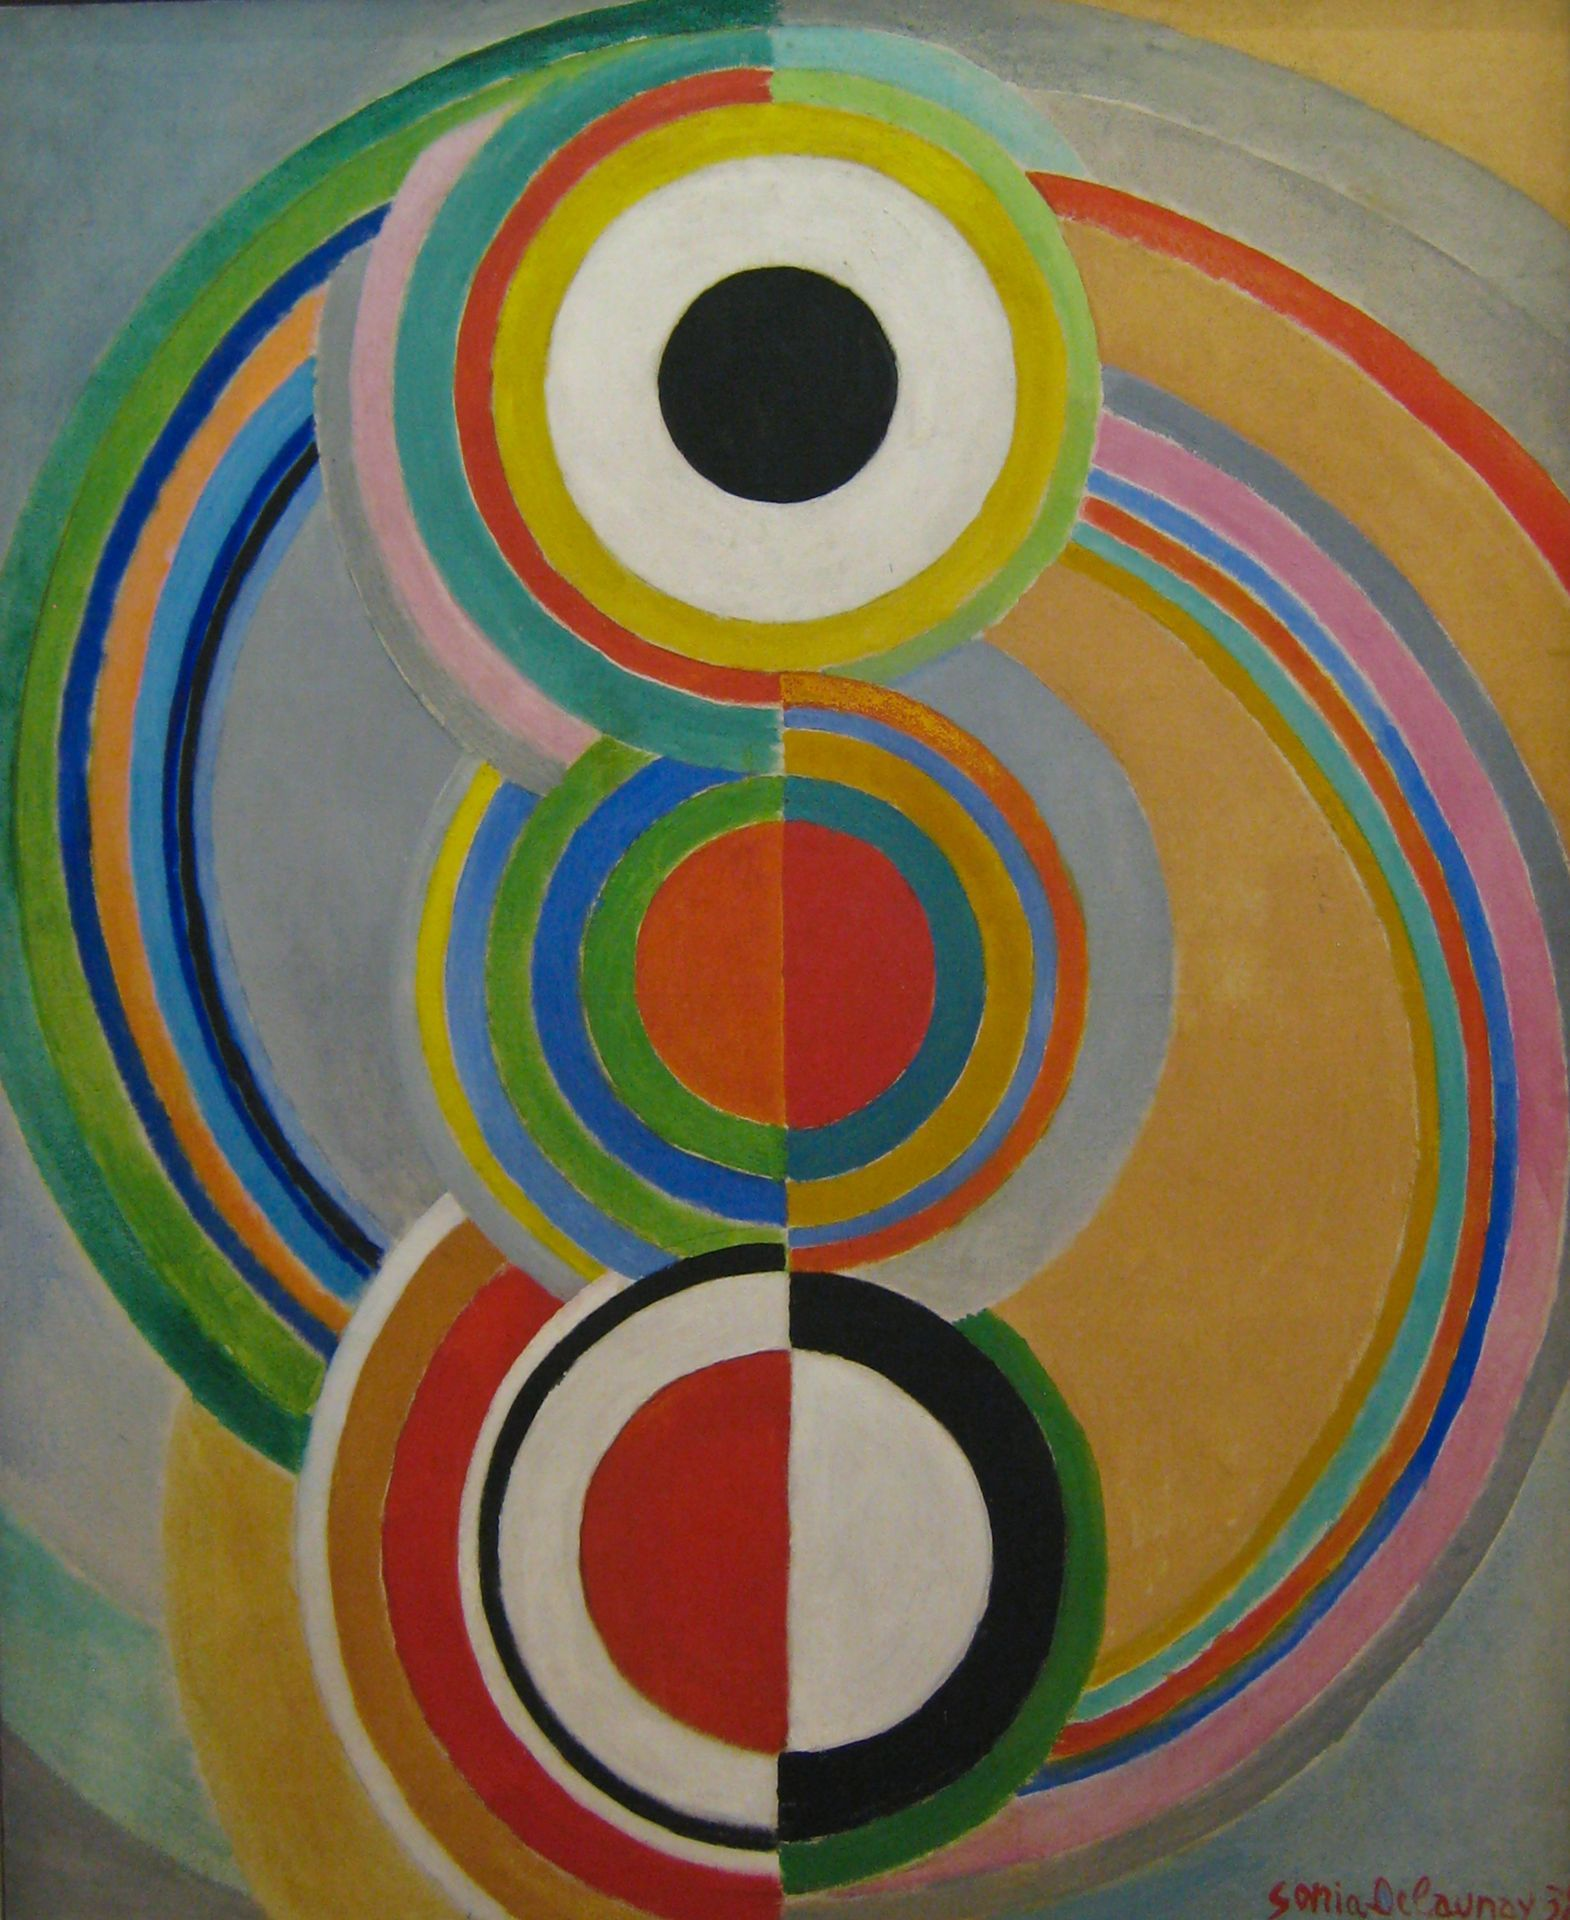 Sonia Delaunay was born to a poor Ukrainian family in 1885, survived two  World Wars, and died wealthy in Paris in 1979. In be… | Sonia delaunay,  Arte, Arte y diseño